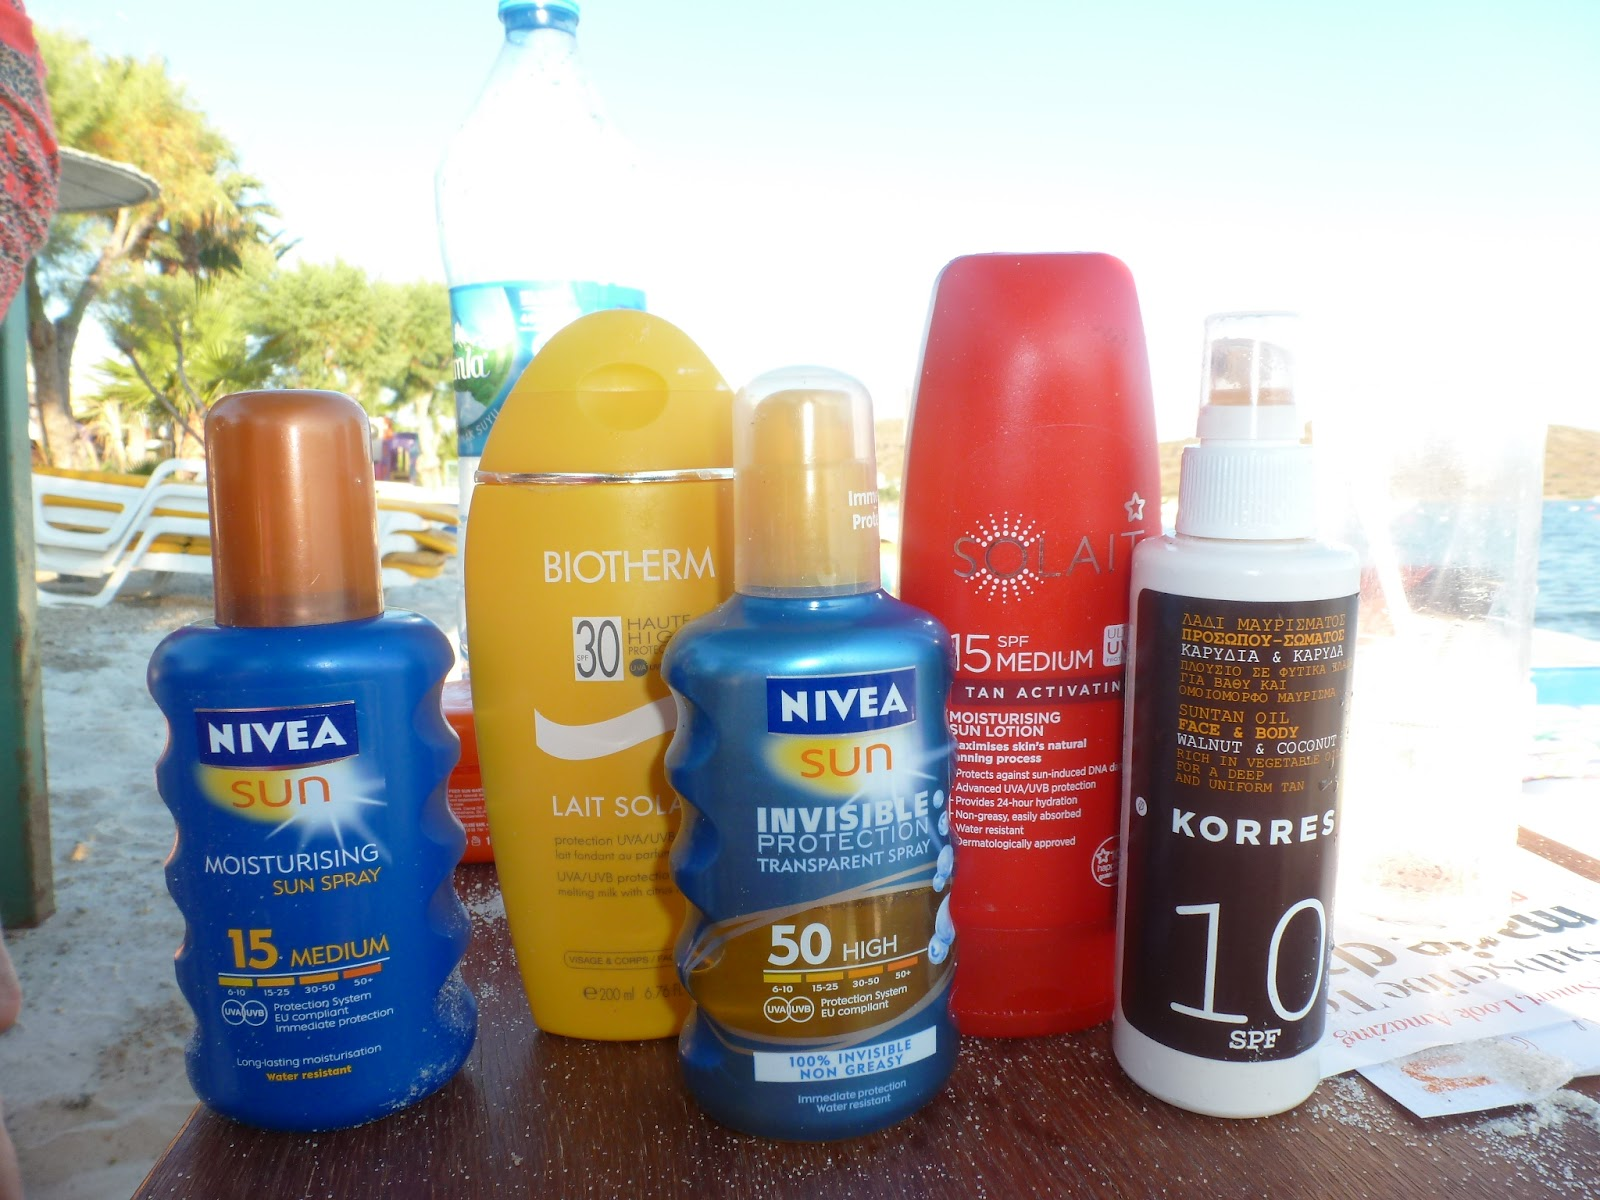 Practise Safe Sun Summer Skin Protection Vex In The City Nivea Moisture Lotion Spf 50 100 M We All Have Different Tones Hence Varying I Opted For Spf30 Spf15 But Also Used Spf50 On Occasion Too